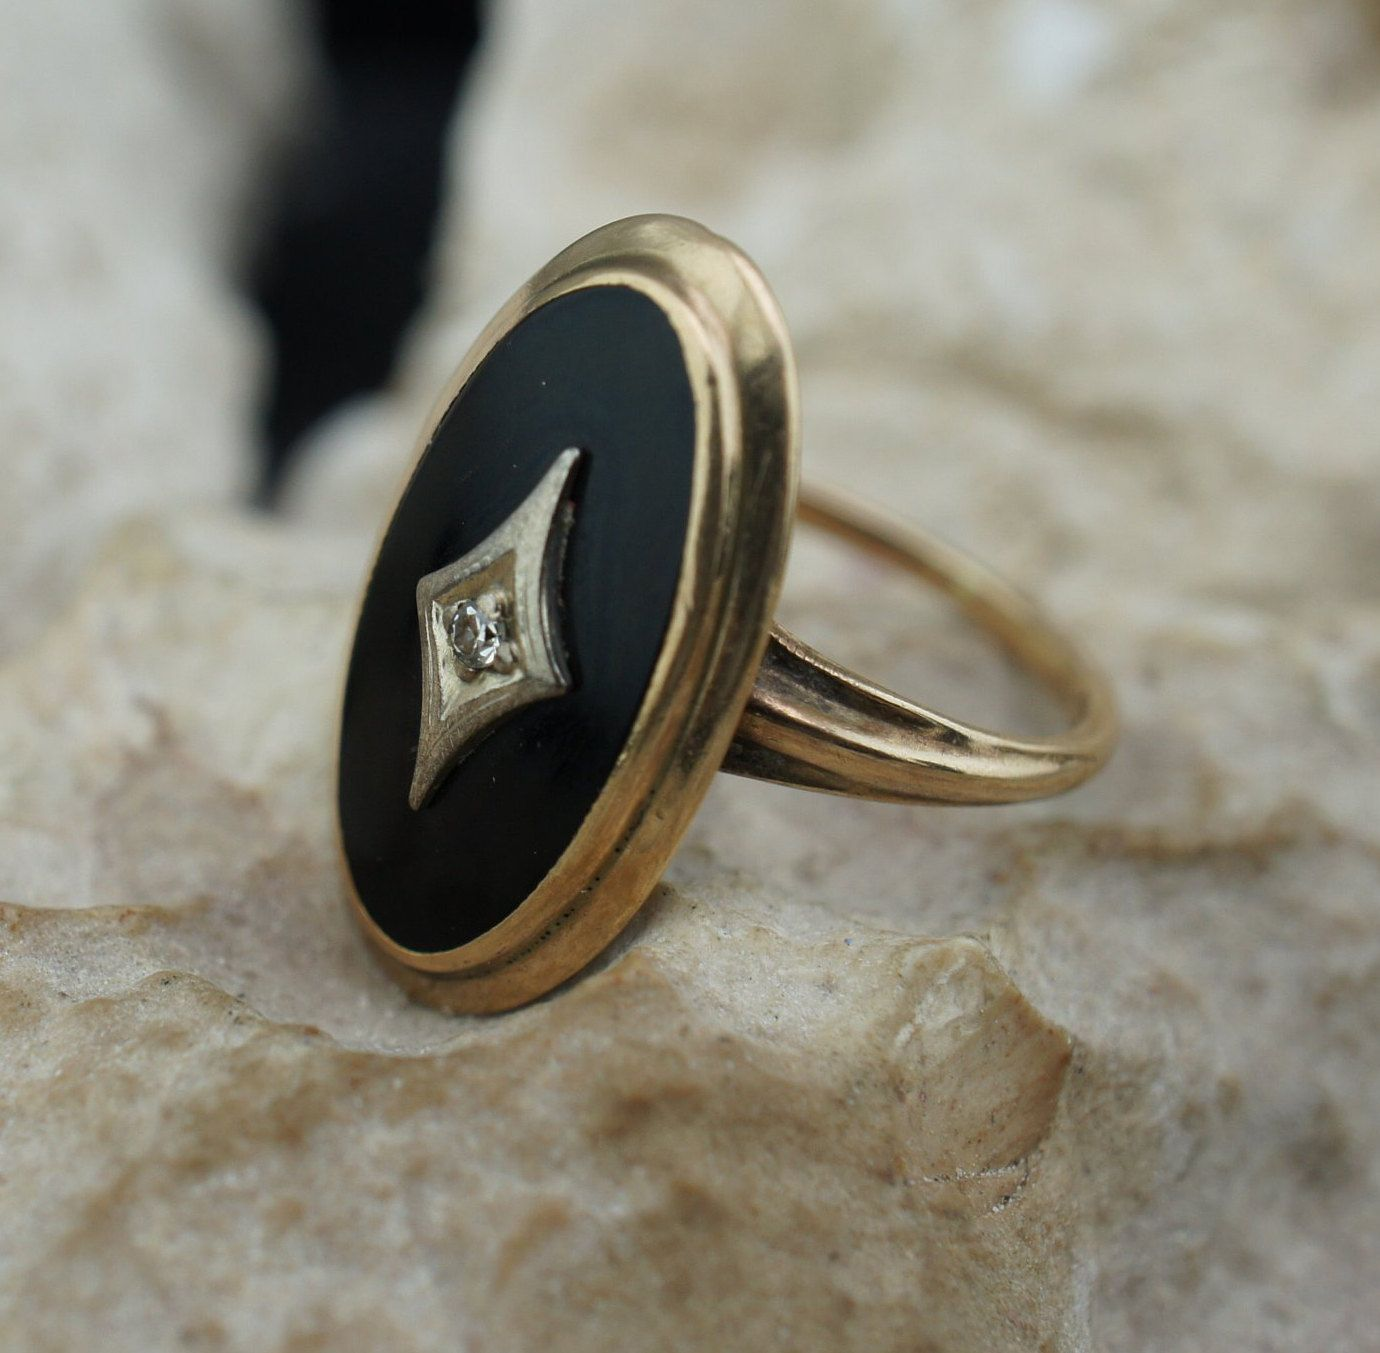 Solid Gold 10k Ring Black Stone Onyx Cz Yellow Oval Vintage Jewelry Collectable Size 5 1 4 Round Band Black Stone Ring Black Rings Black Stone